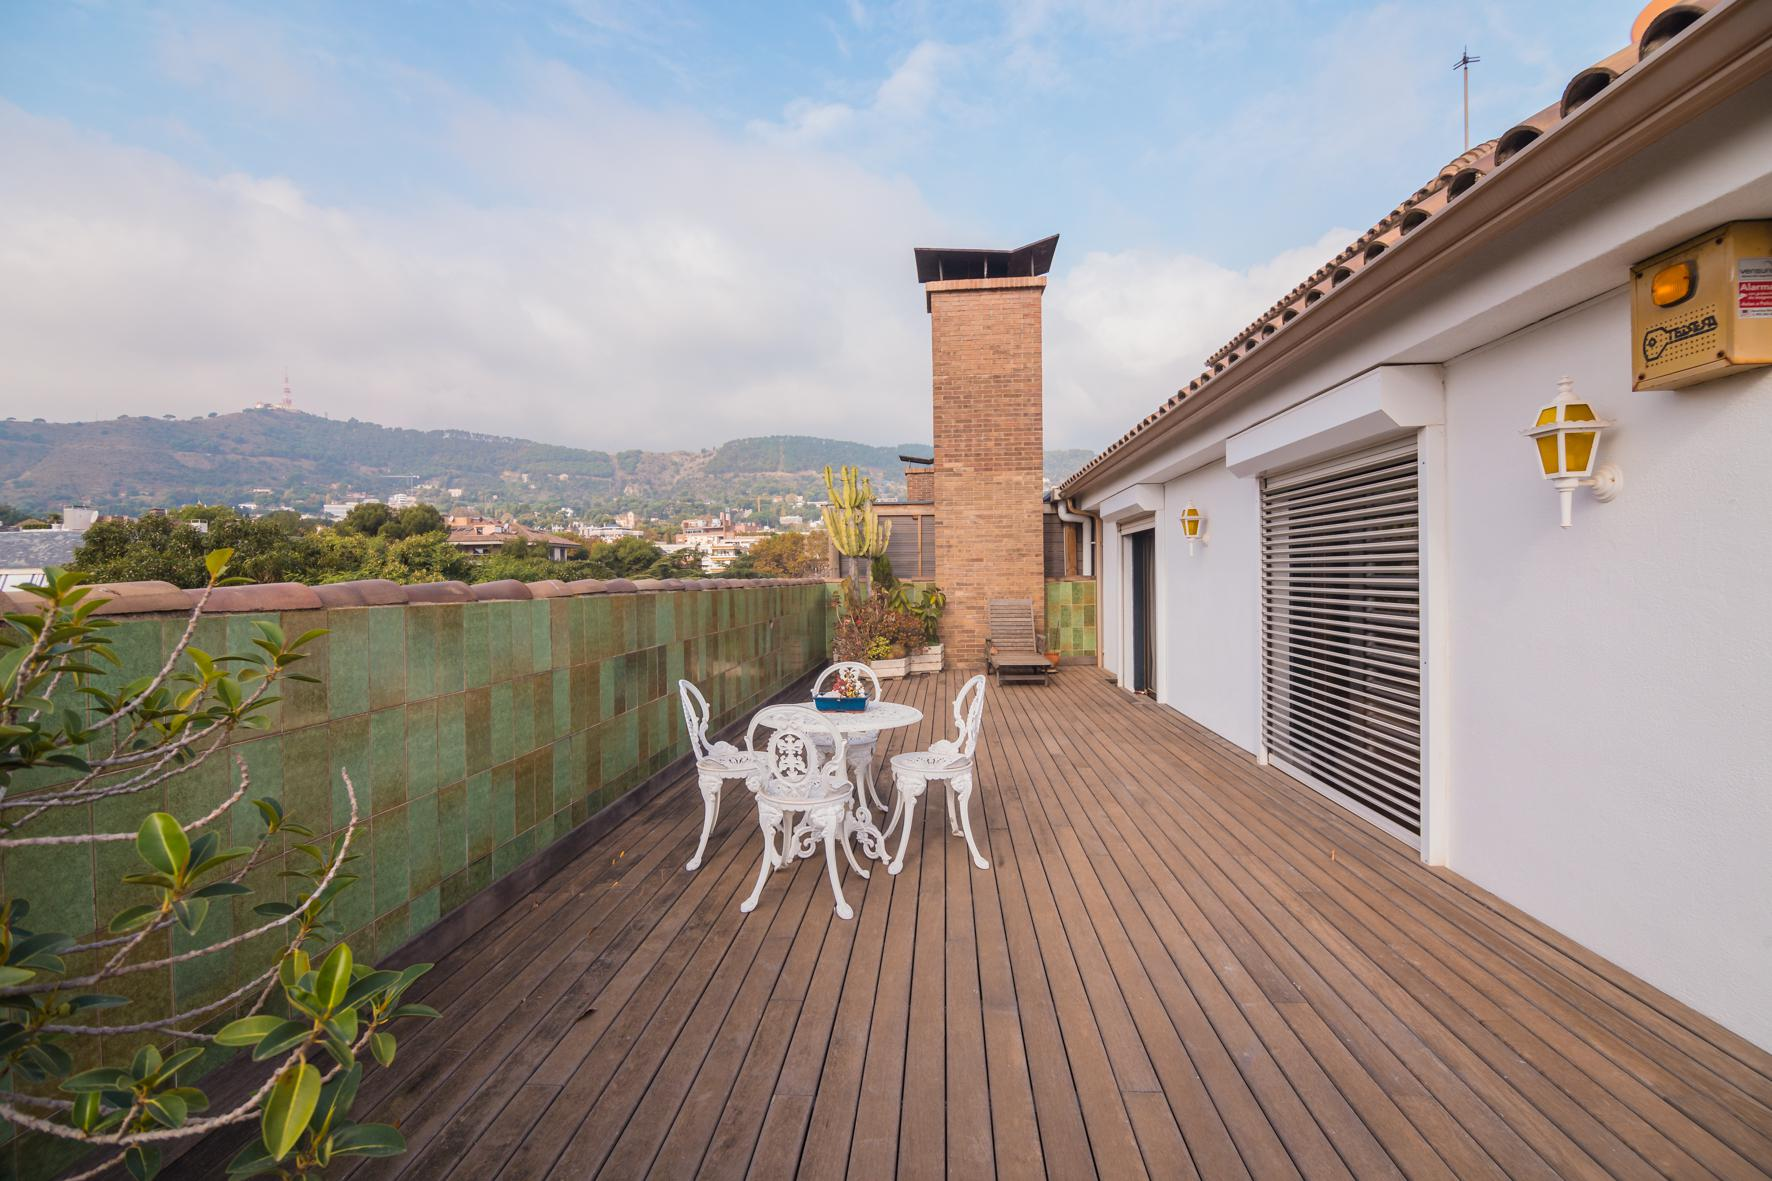 244103 Penthouse for sale in Les Corts, Pedralbes 1